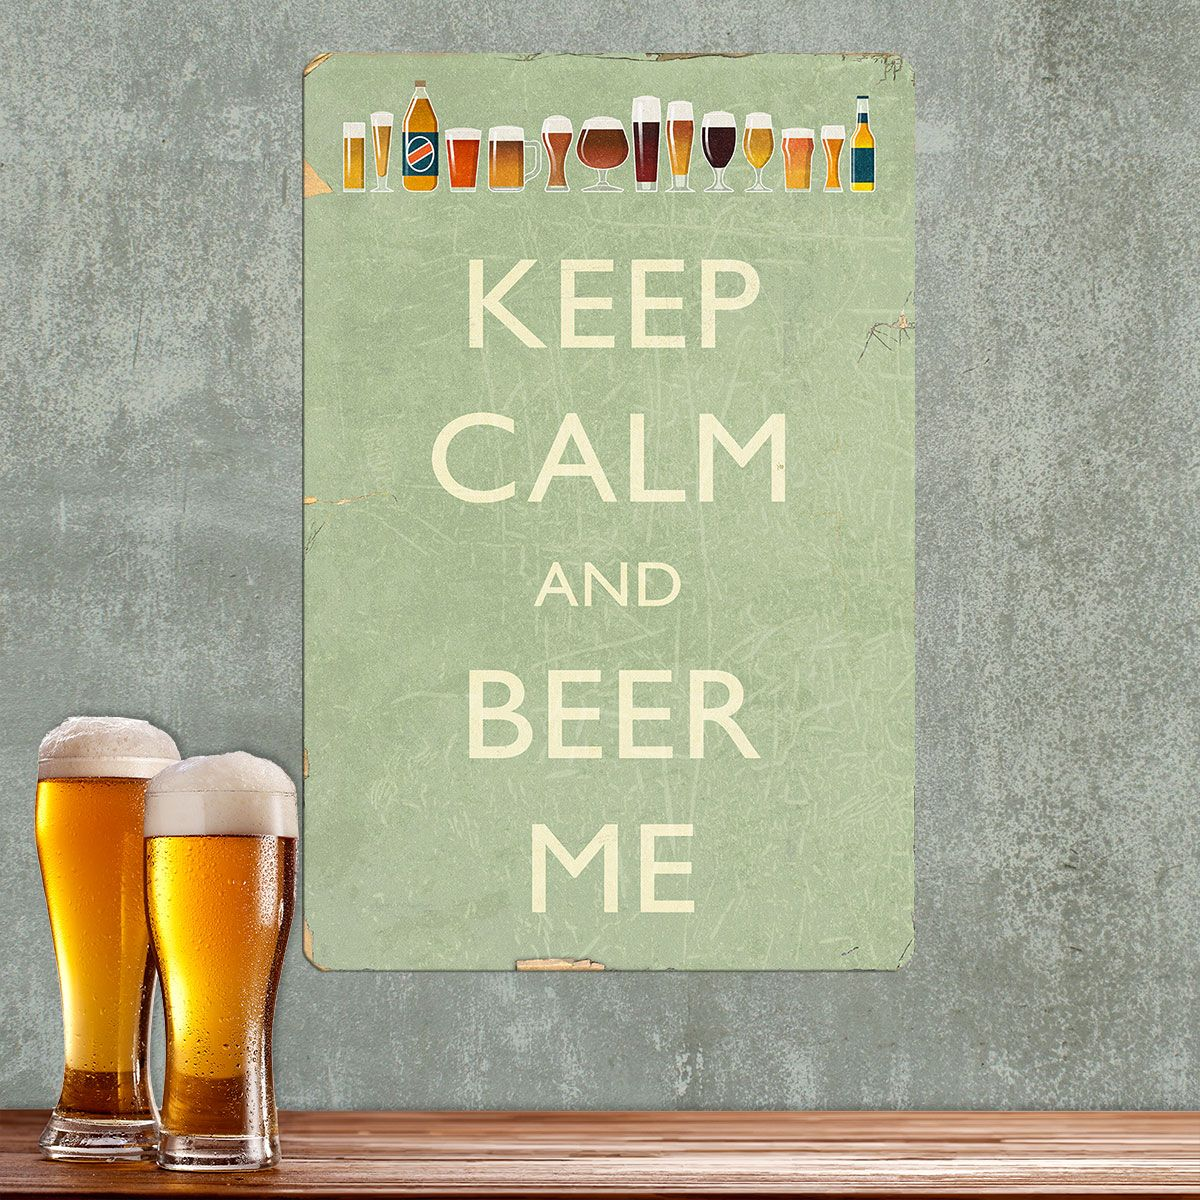 Keep calm and beer me funny wall decal funny wall decal